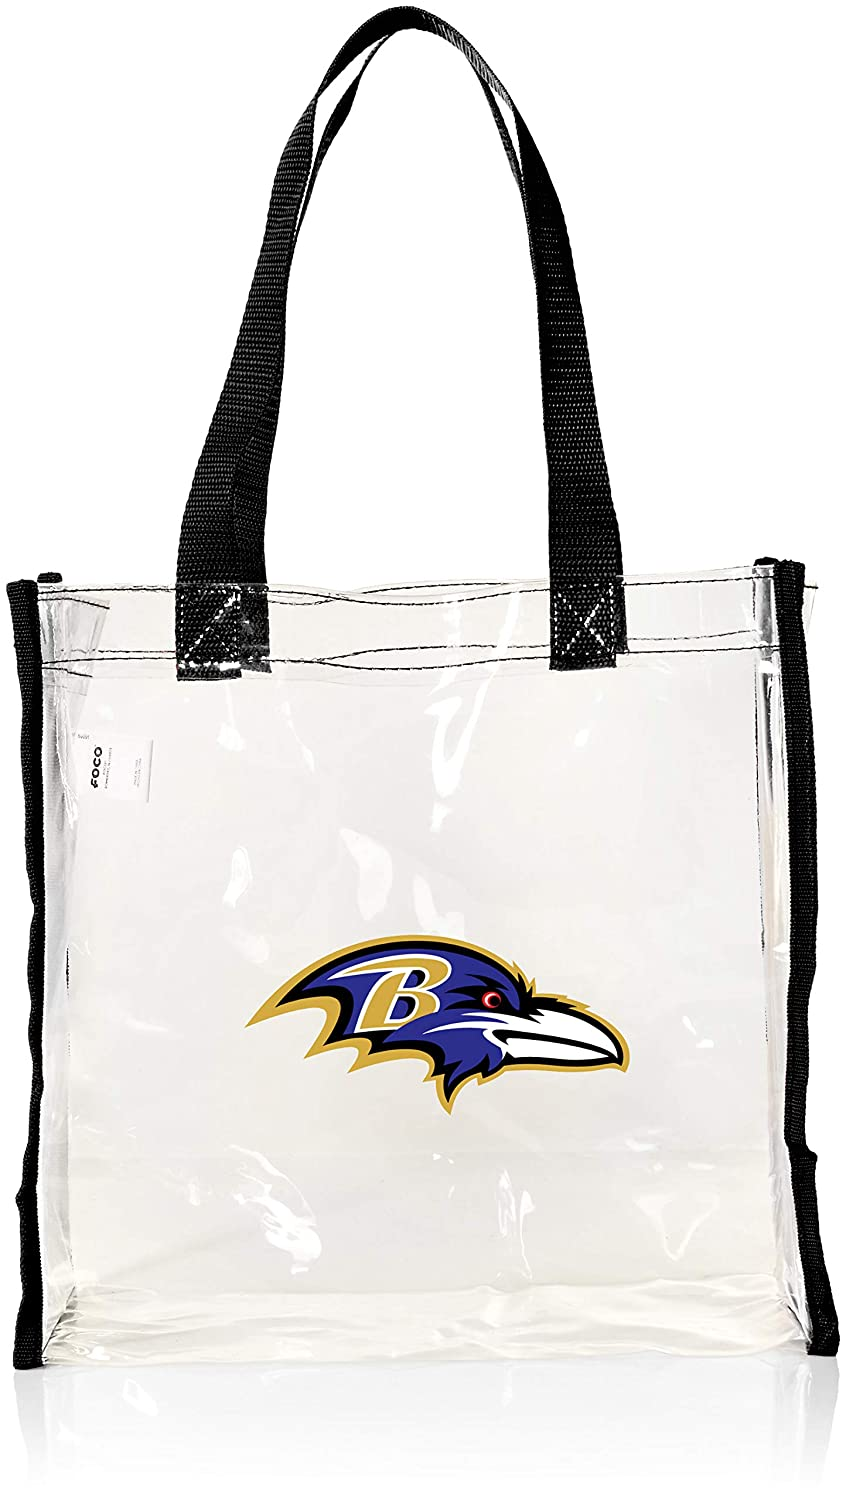 2013 NFL Football Clear See Thru Reusable Bag - Pick Team - Baltimore Ravens Forever Collectibles BGCLRNFREUBRV